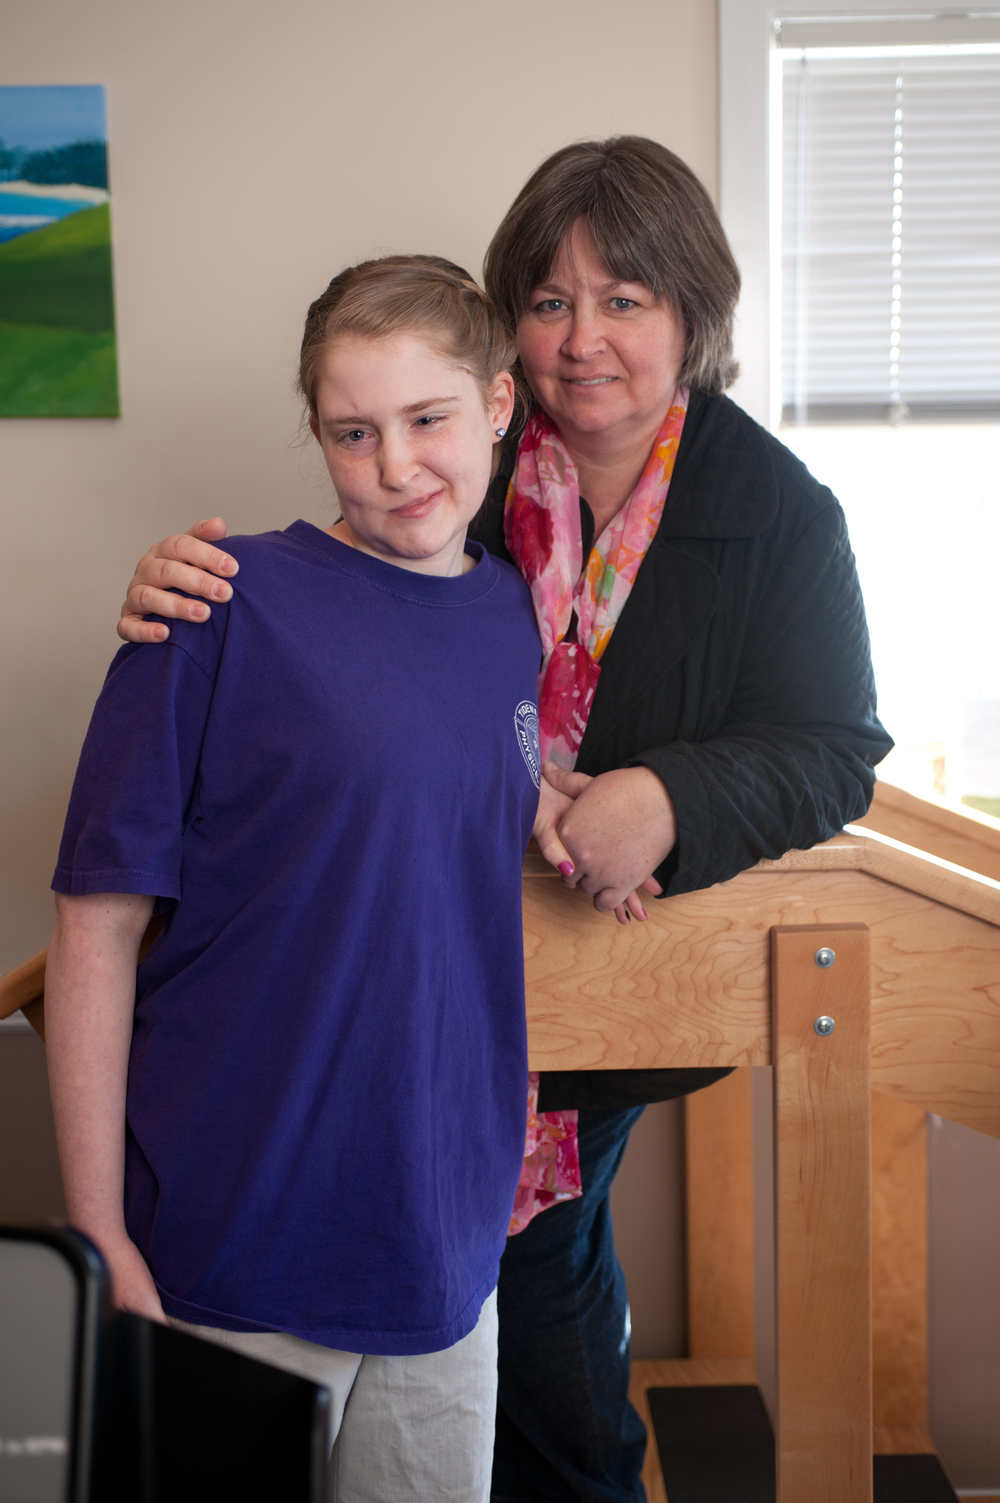 Karissa Yoderand her mother Carla at Tidewater Physical Therapy Harrington.